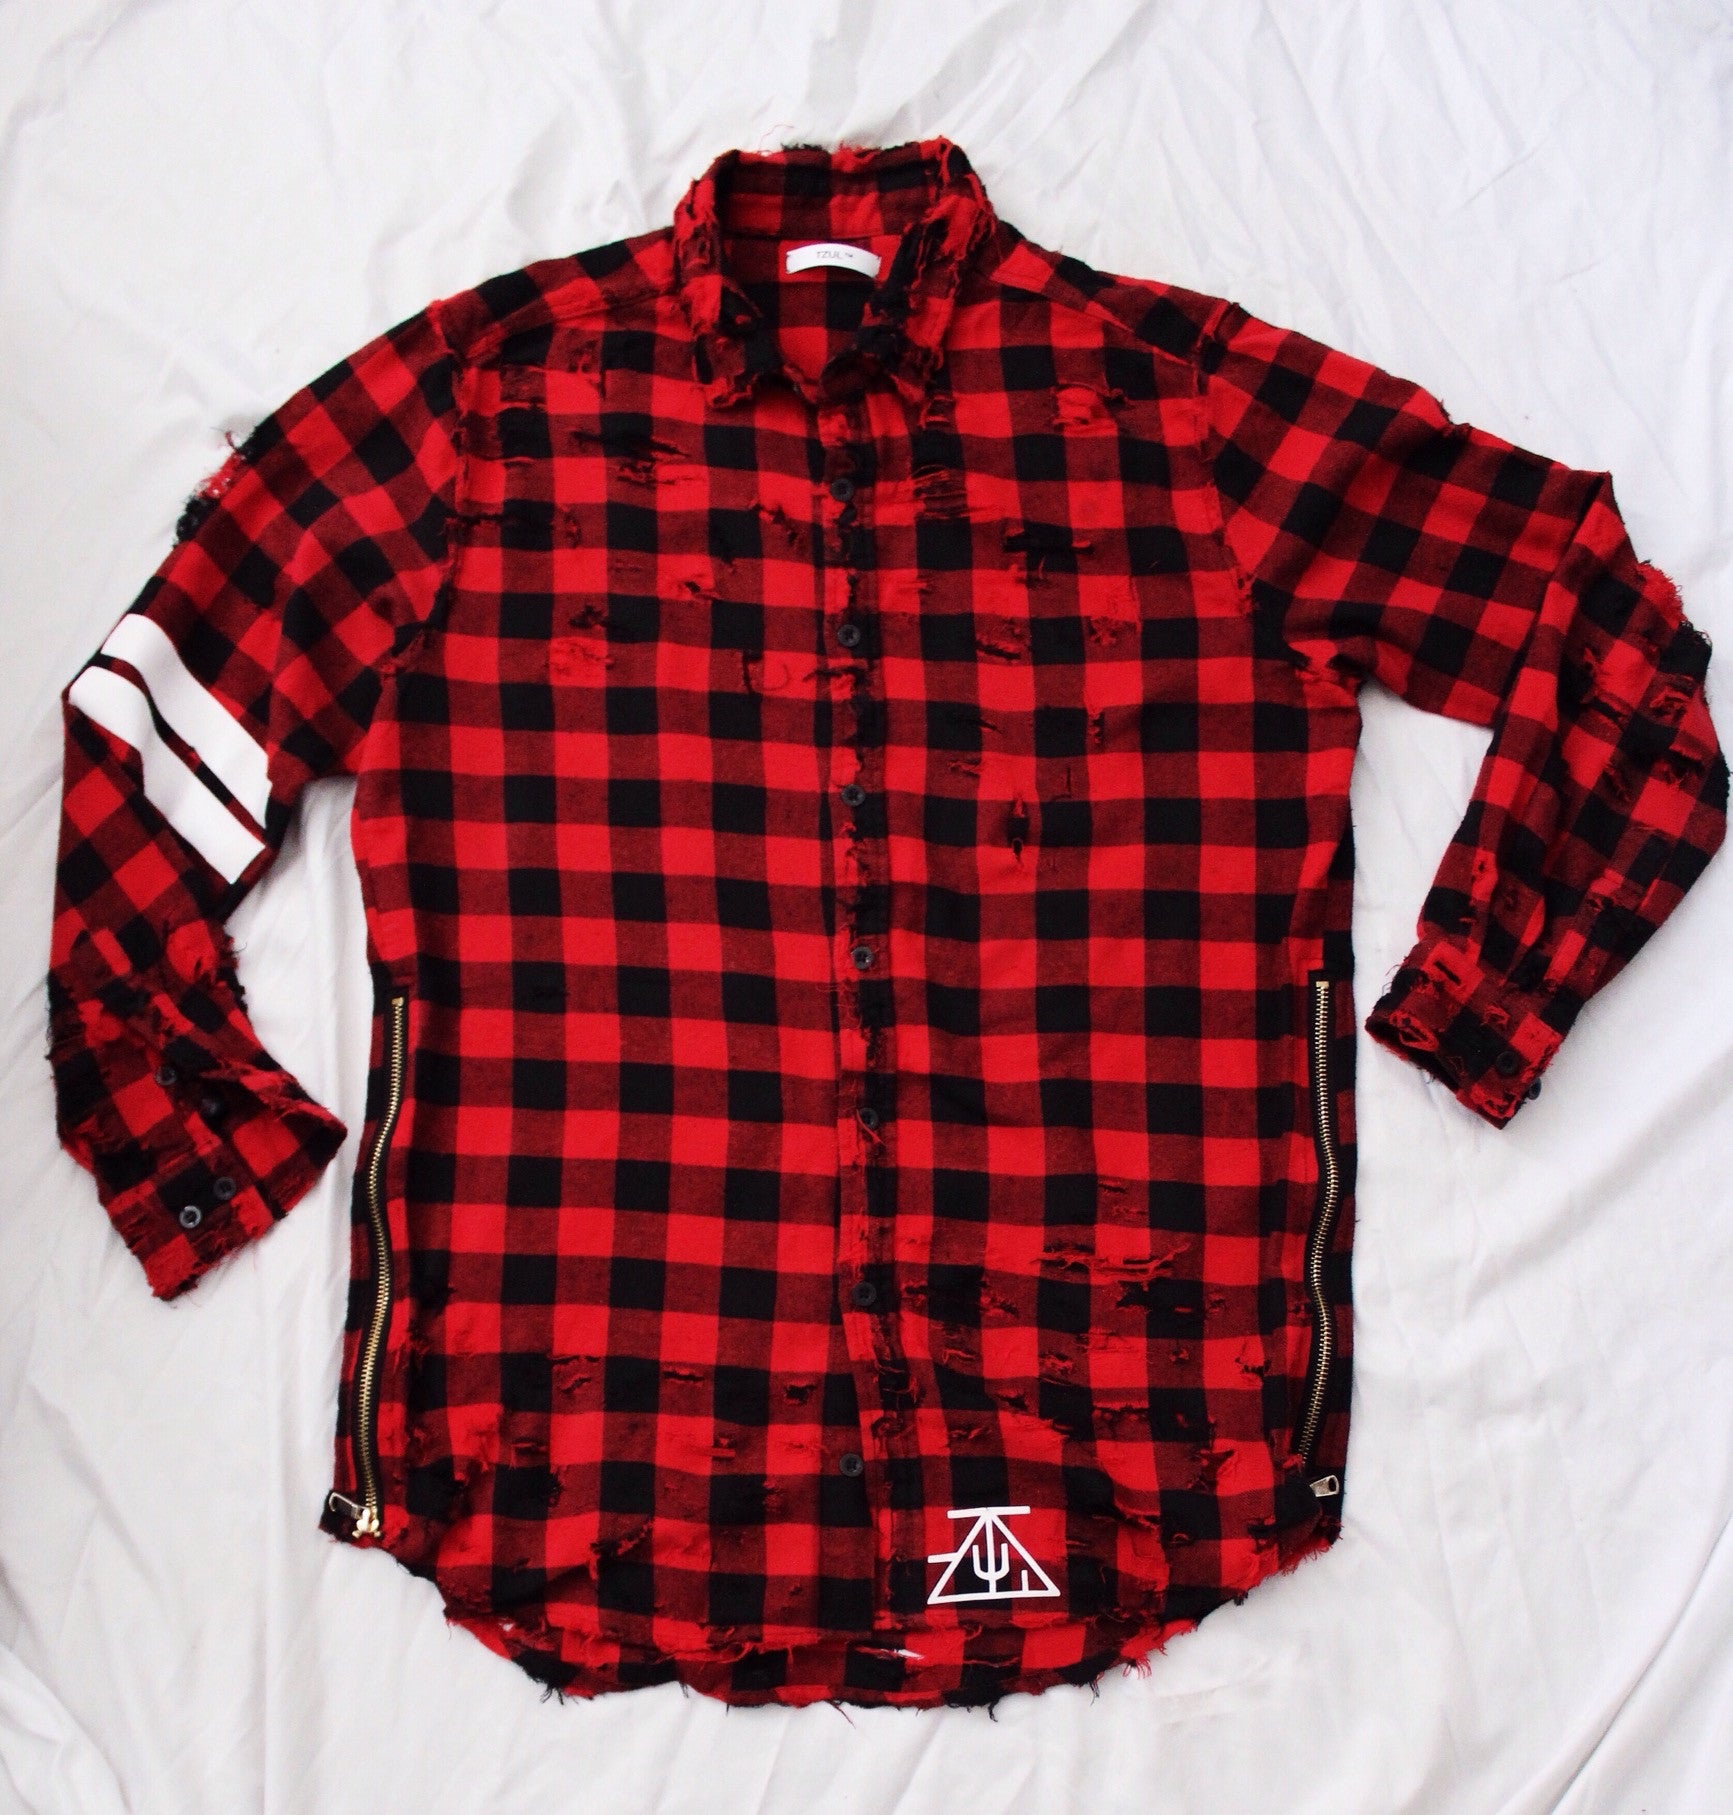 TZUL Vintage Distressed Flannel Shirt